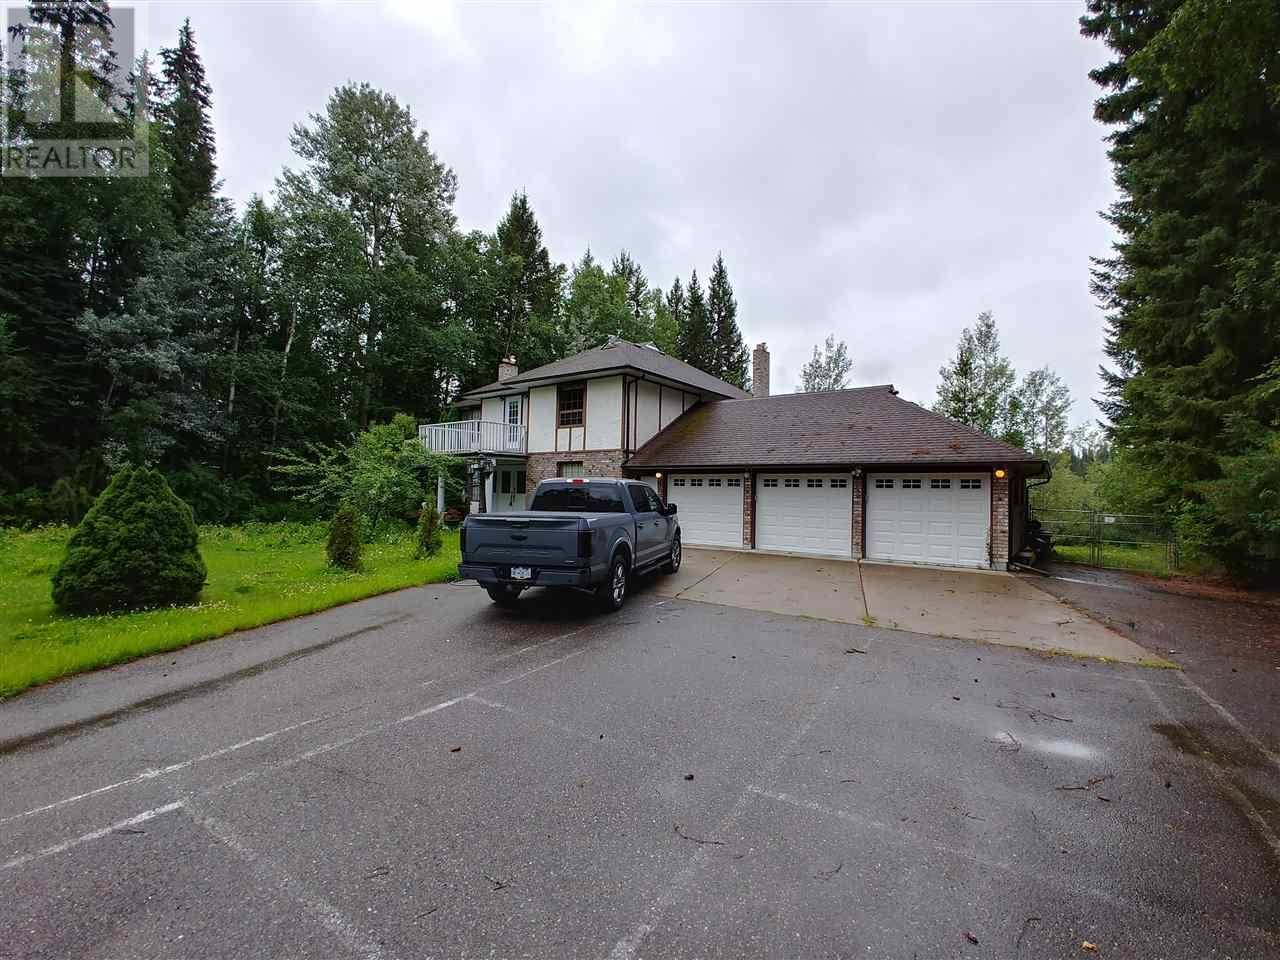 House for sale at 8597 Nechako Rd North Prince George British Columbia - MLS: R2444628